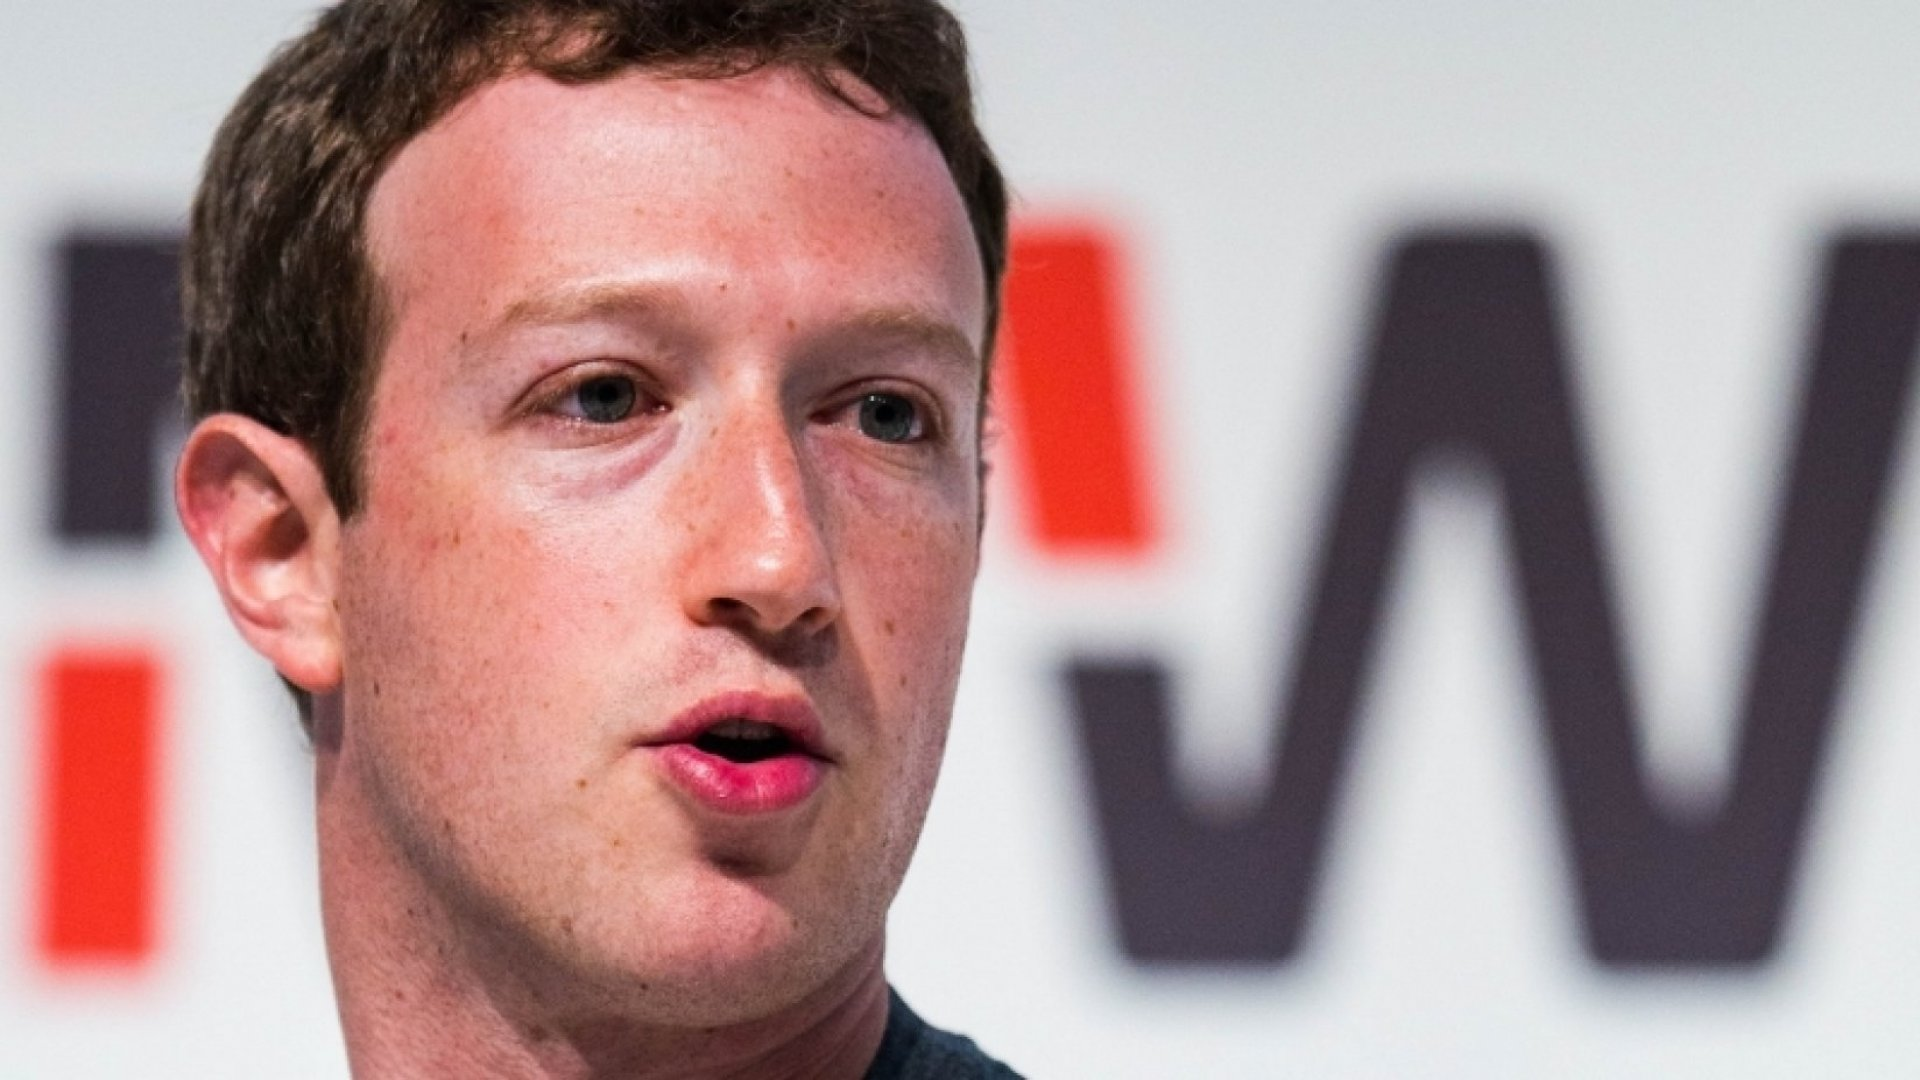 What's the Biggest Challenge of Entrepreneurship? Mark Zuckerberg and Others Provide Answers